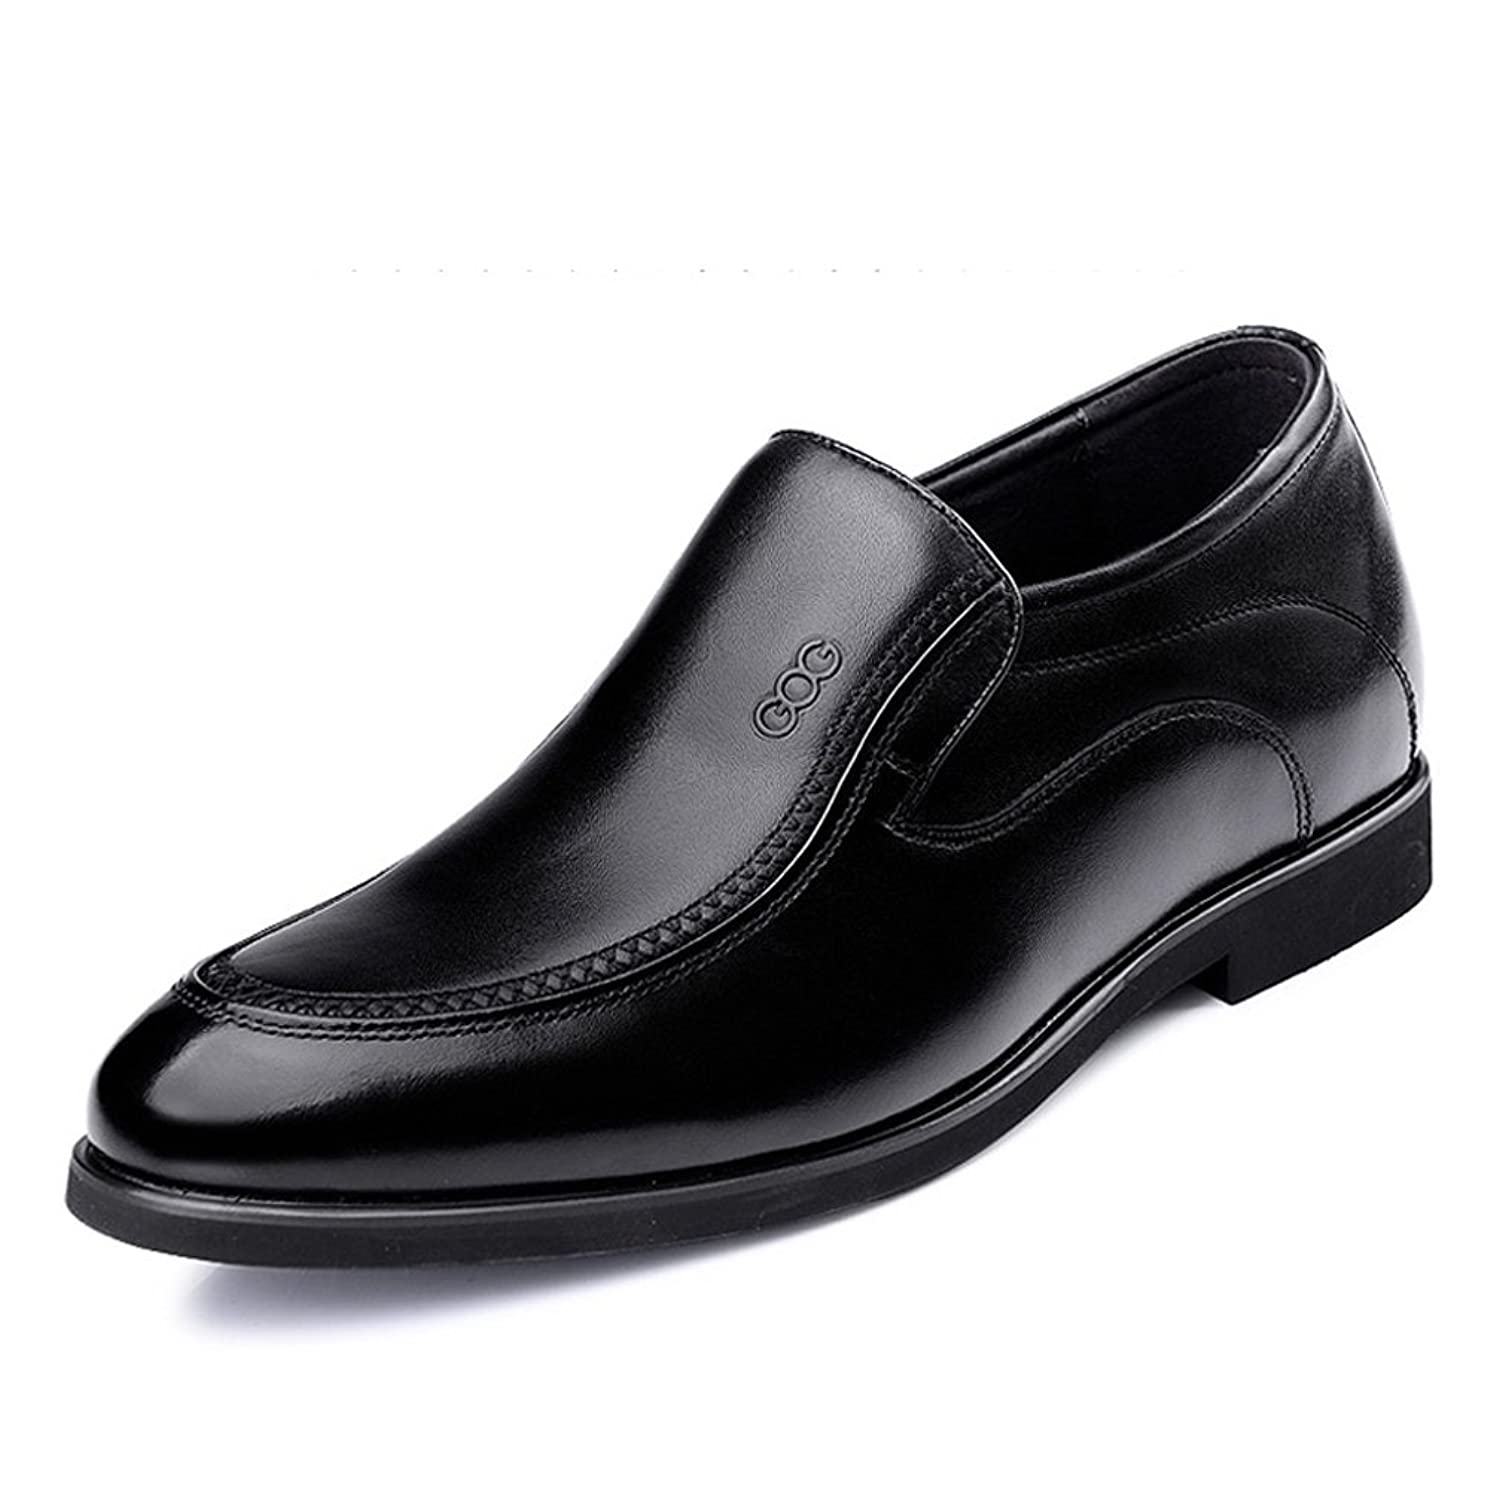 2.56 Inches Taller - Men's Height Increasing Elevator loafers-Black Genuine Leather Dress Wedding Shoes